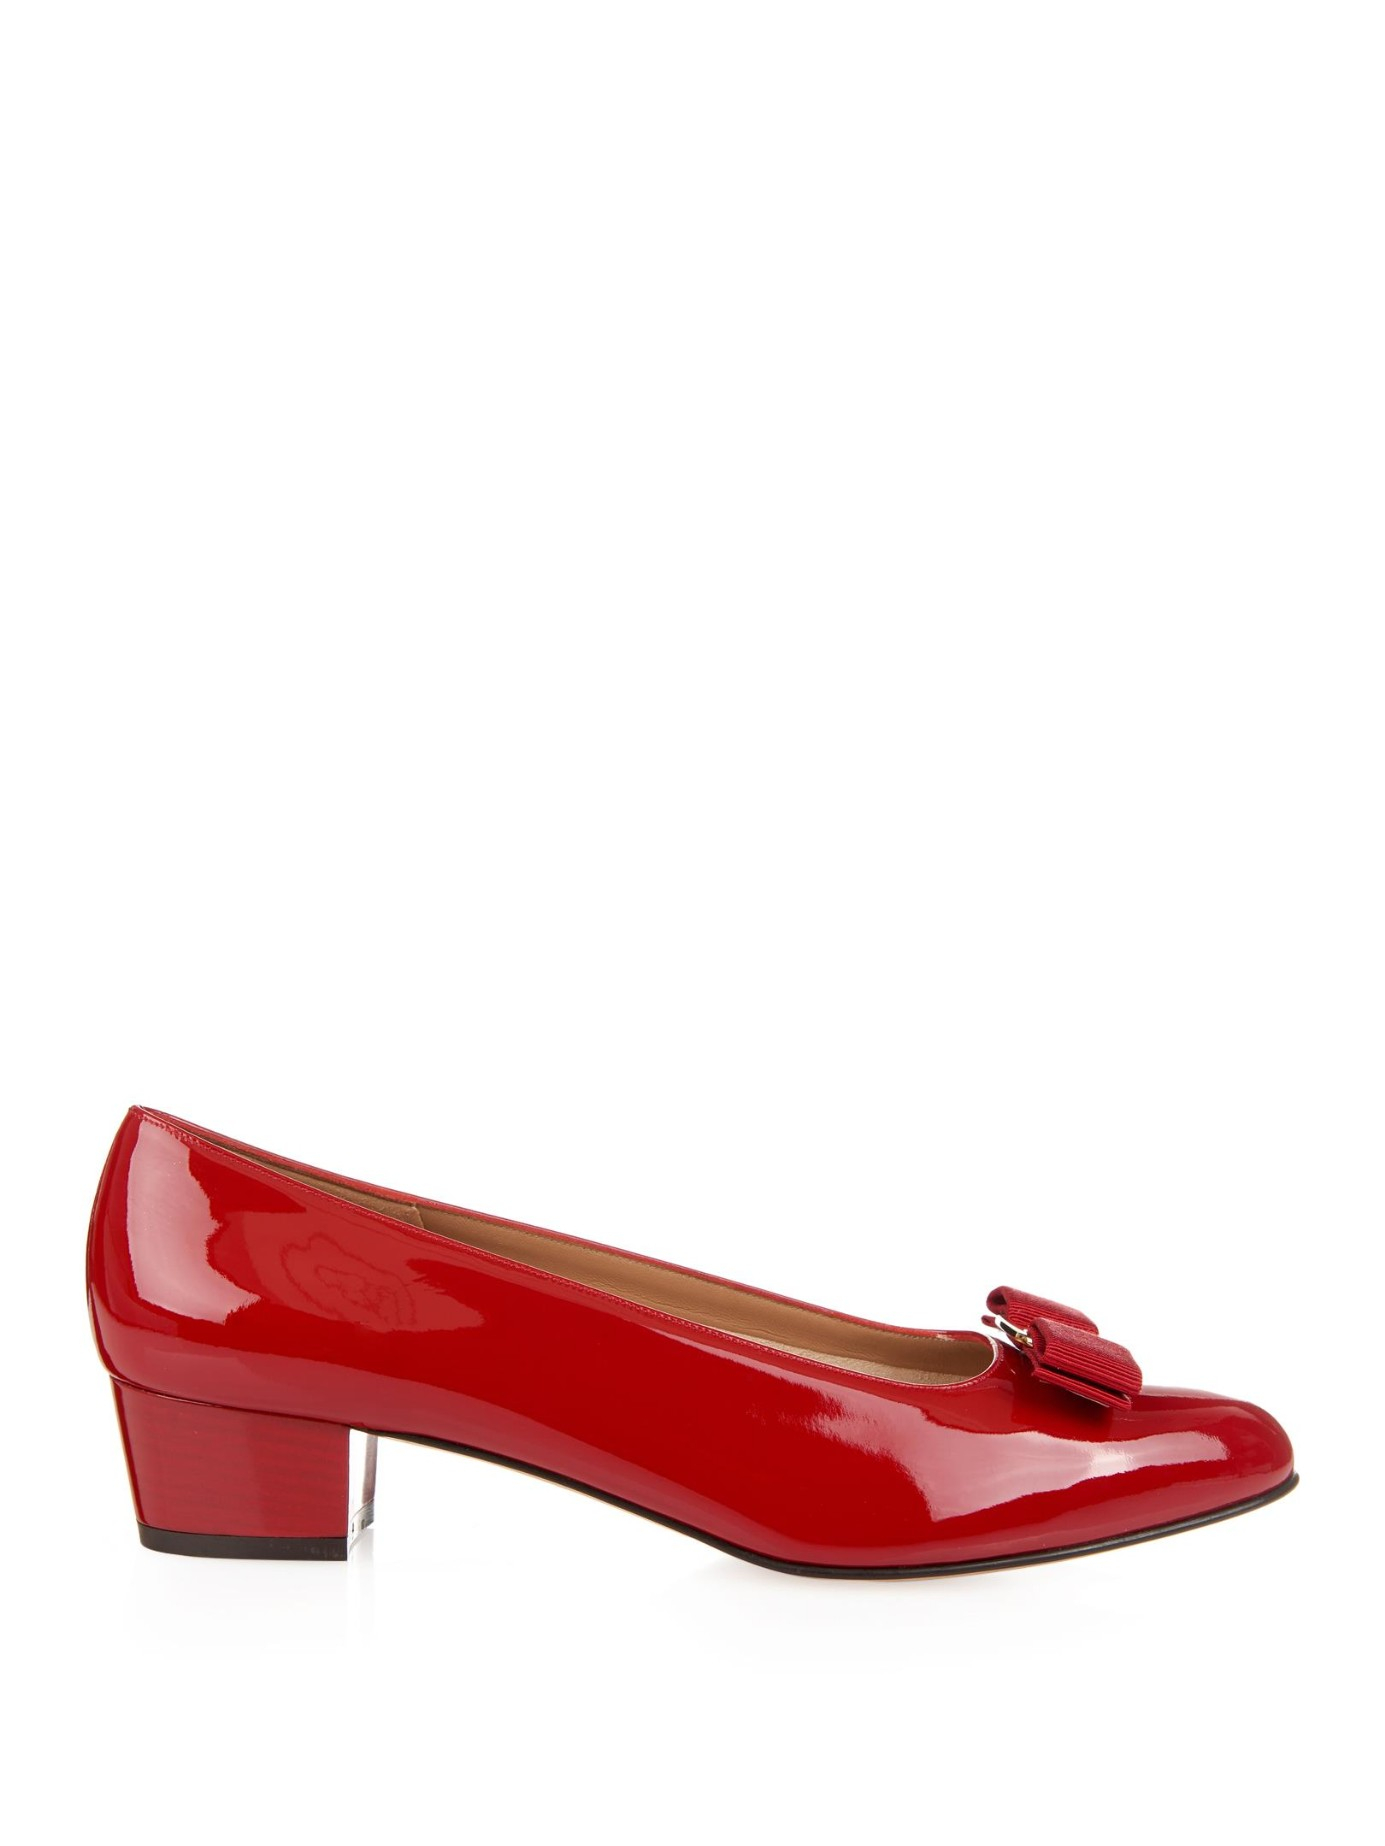 Ferragamo Red Bow Shoes